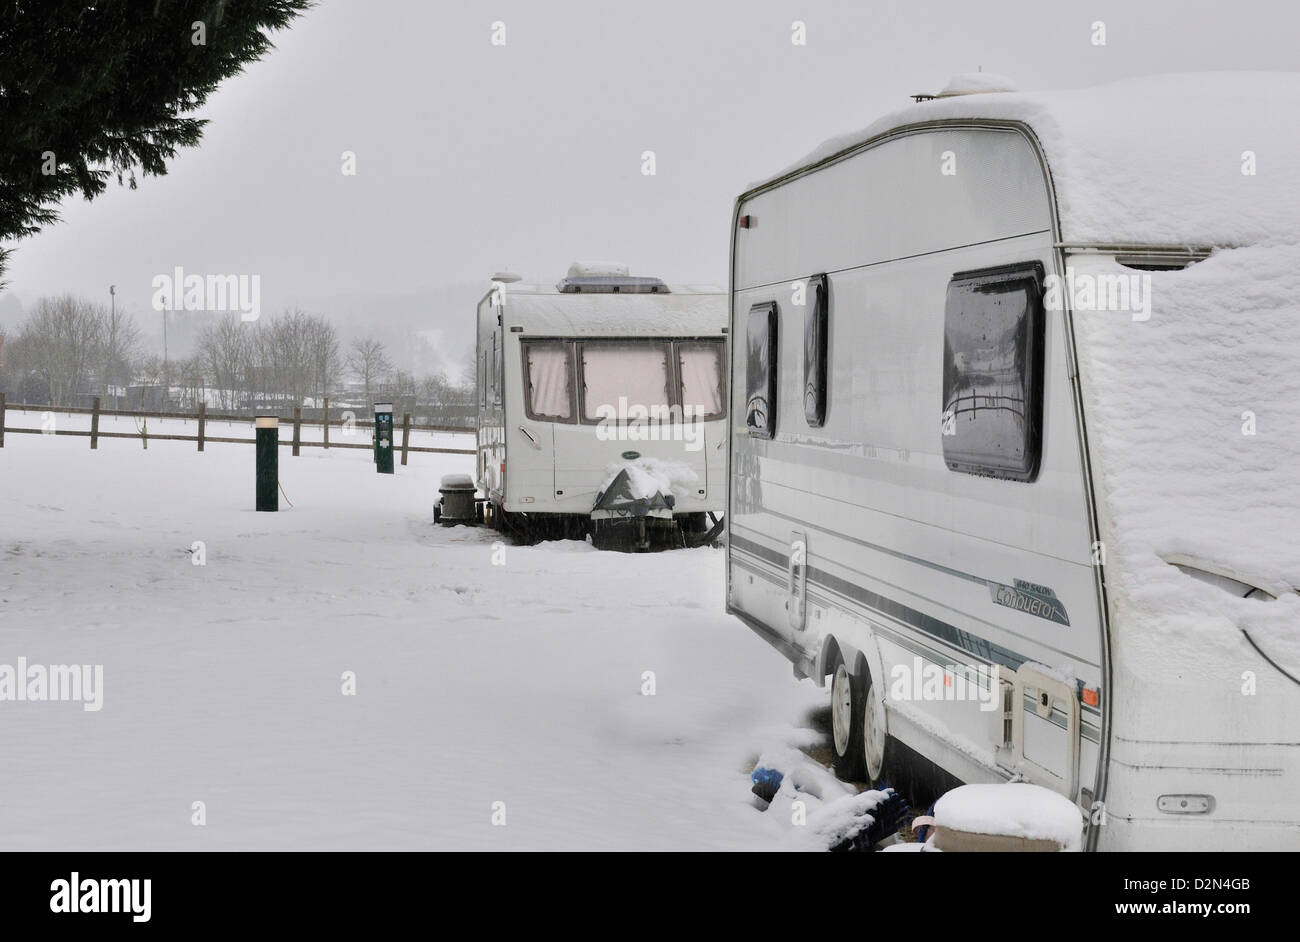 Caravans in an all season caravan park photographed during january's snow fall, - Stock Image